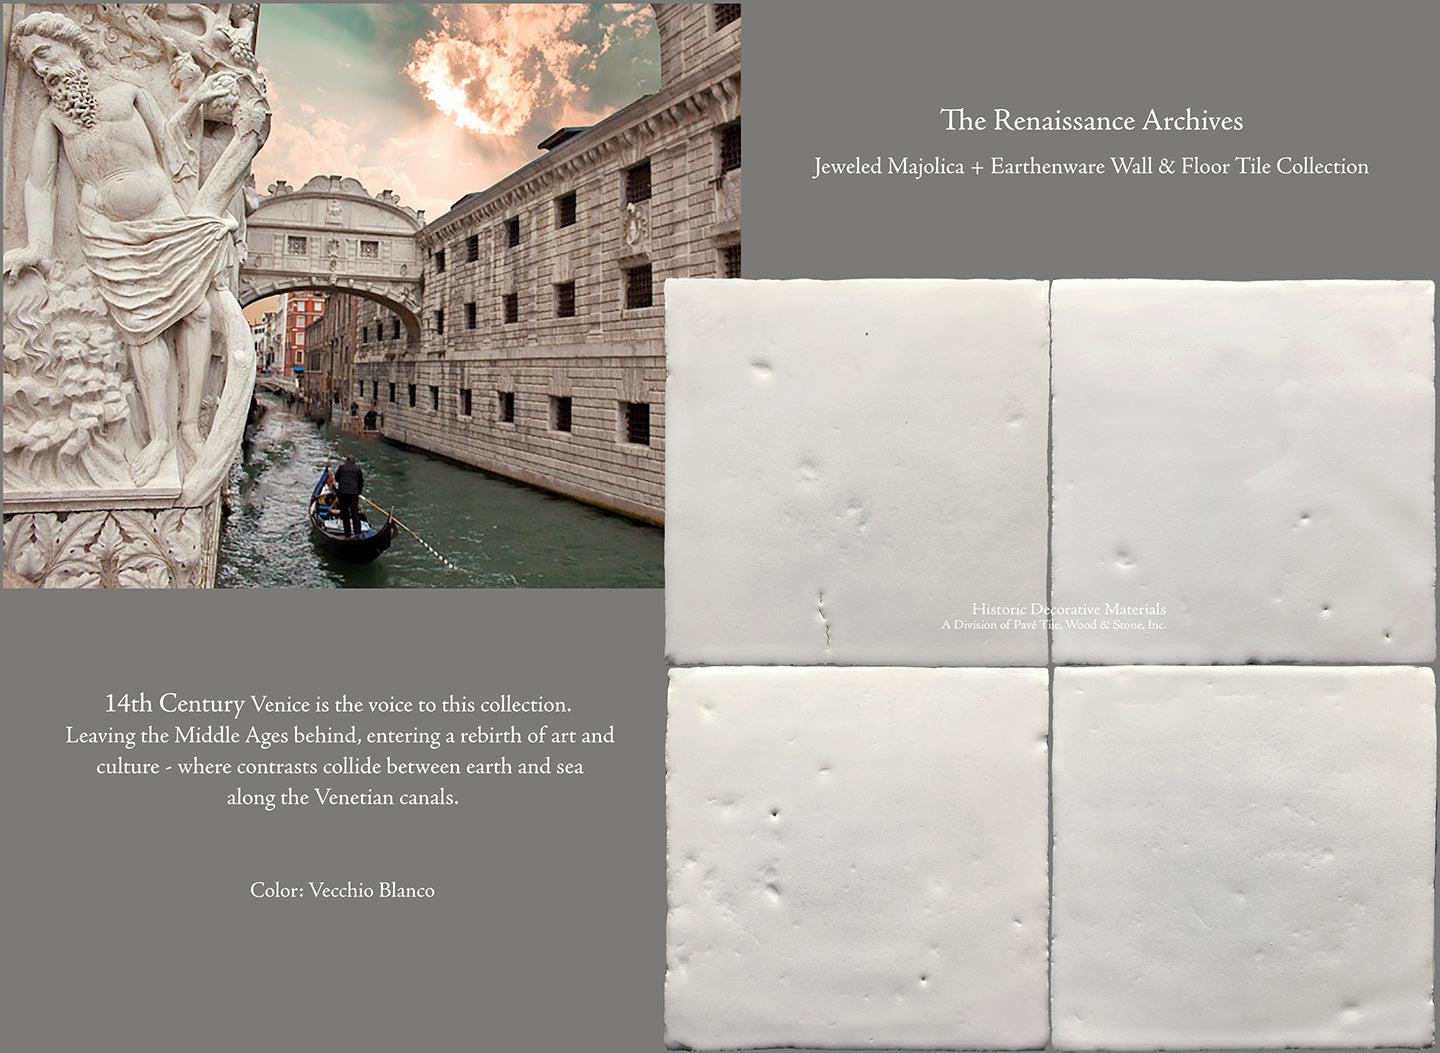 The Renaissance Archives - an Italian Majolica and Earthenware Terra Cotta Tile Collection